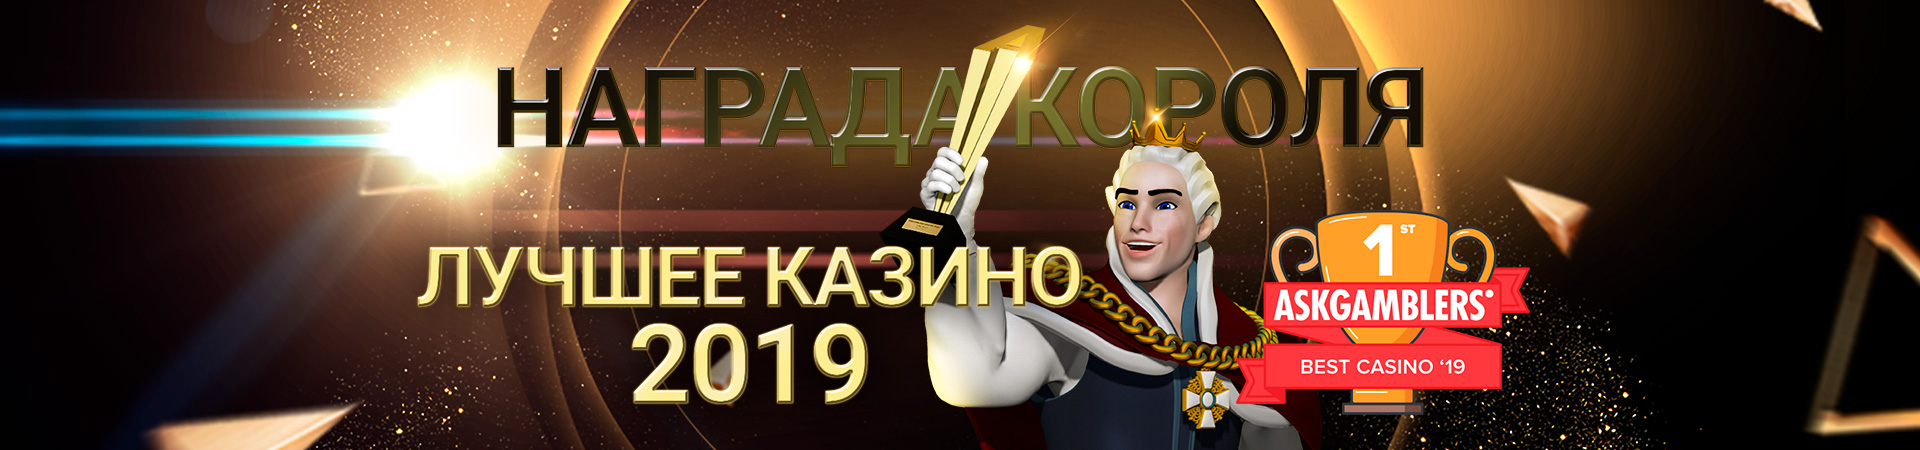 2020 07 King Billy Russian Best Casino 2019 1920x450